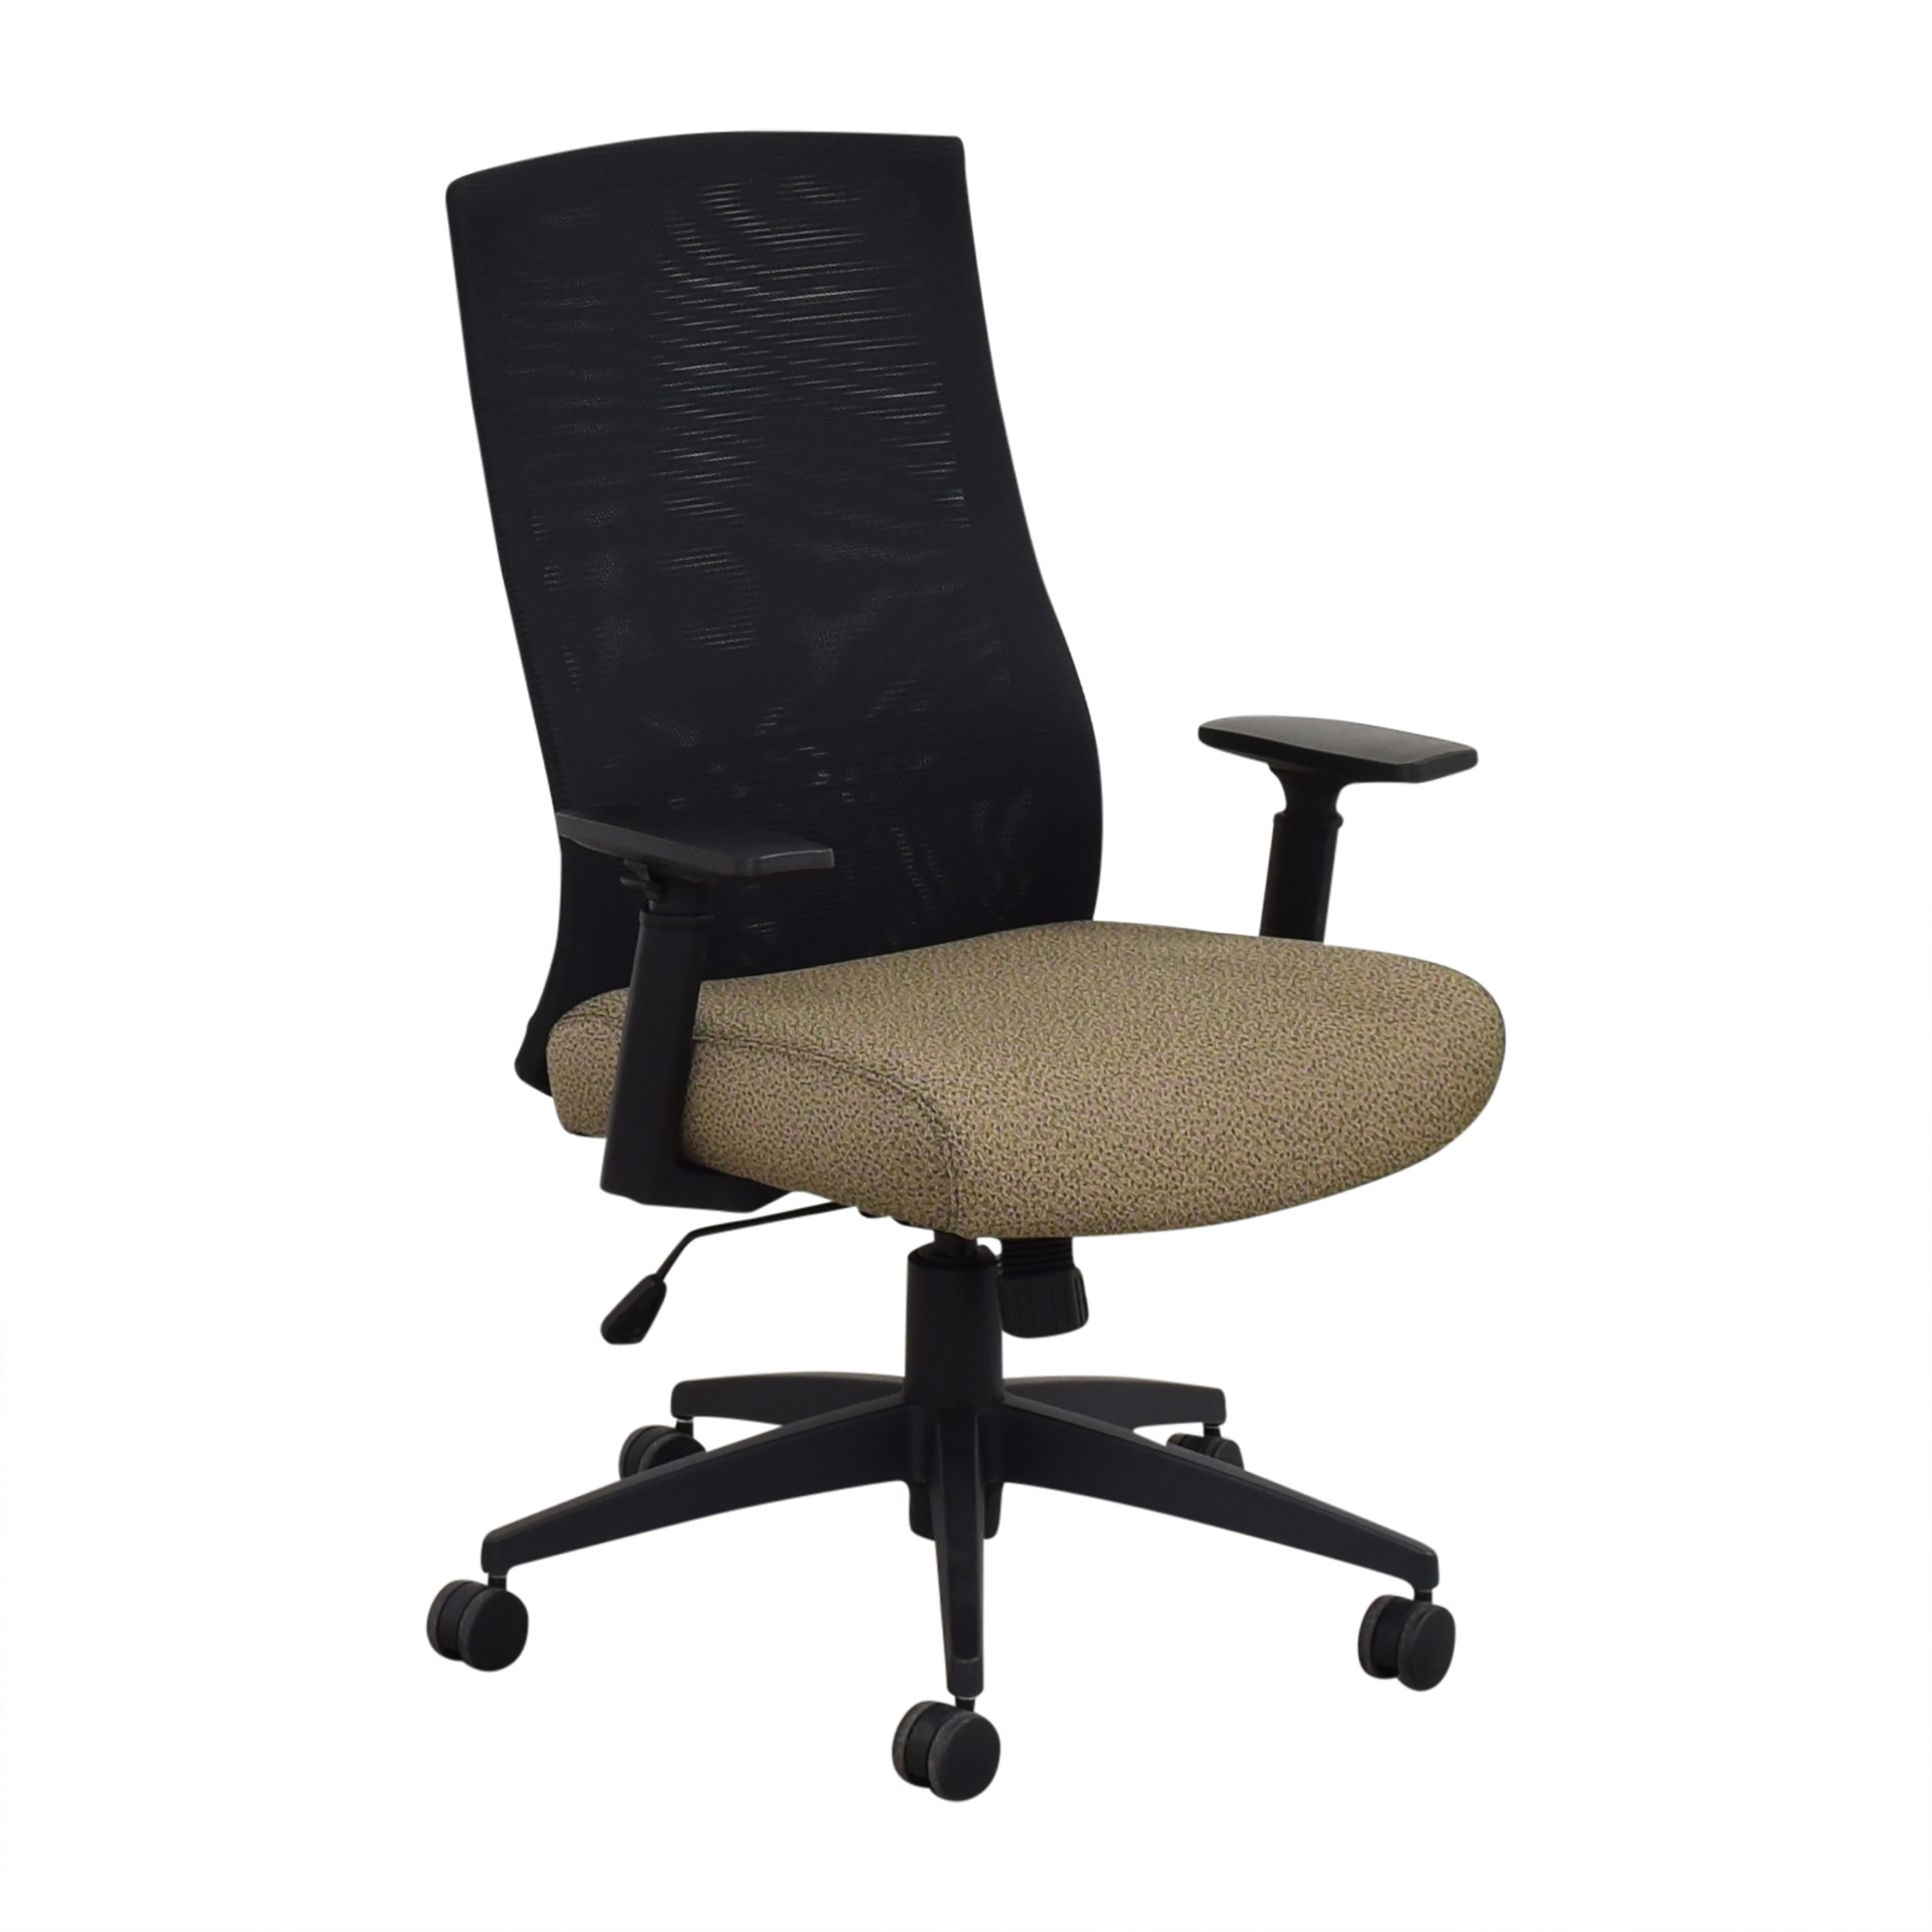 shop Offices to Go Mesh Back Synchro-Tilter Chair Offices to Go